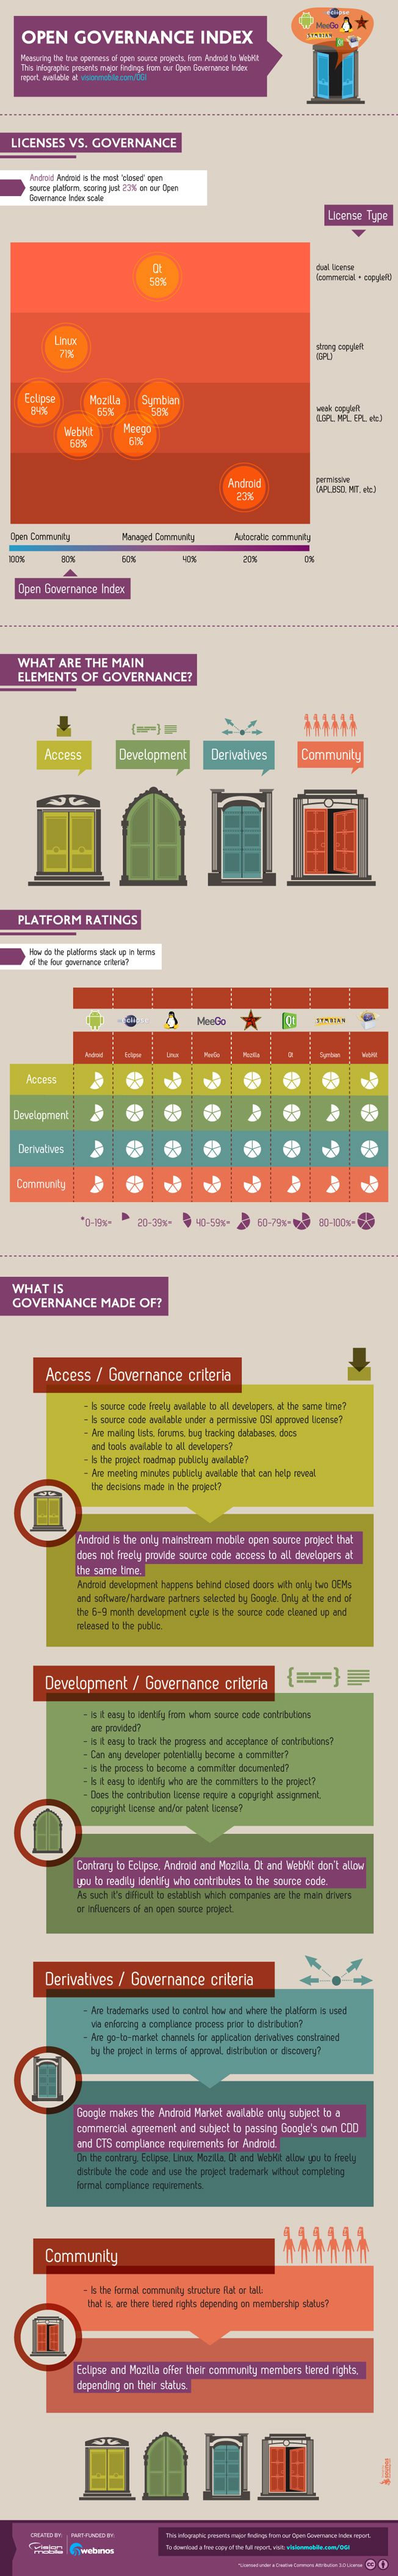 open-source-rankings-infographic